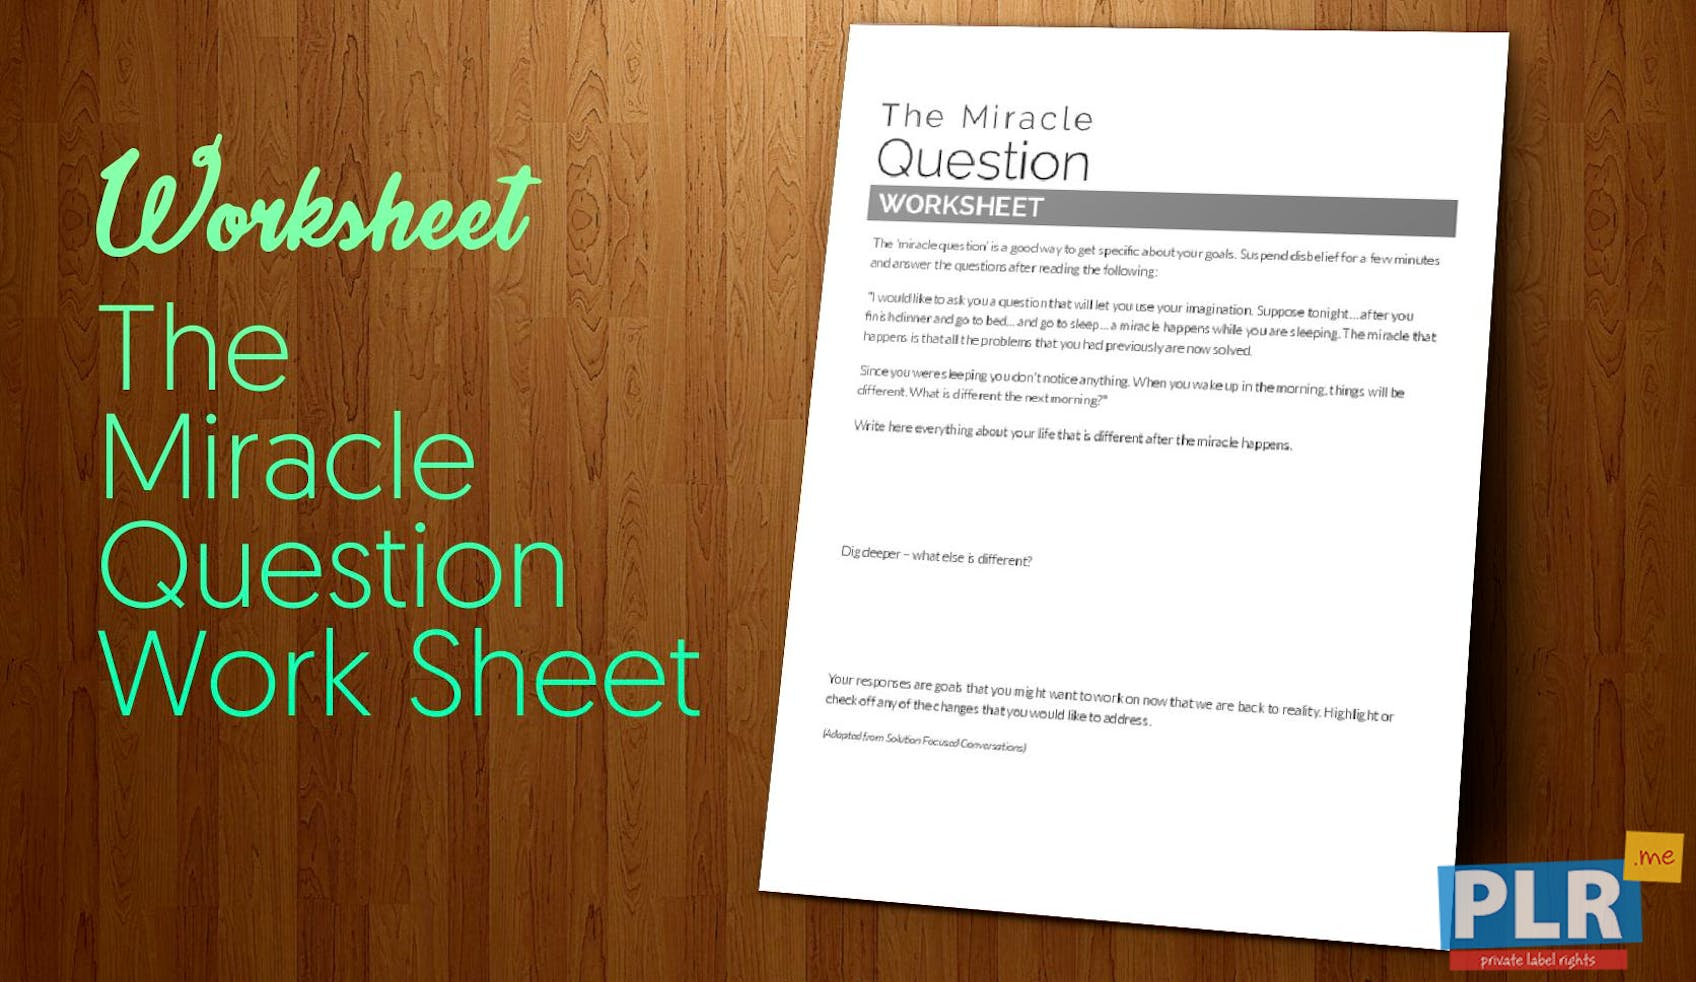 The Miracle Question Work Sheet